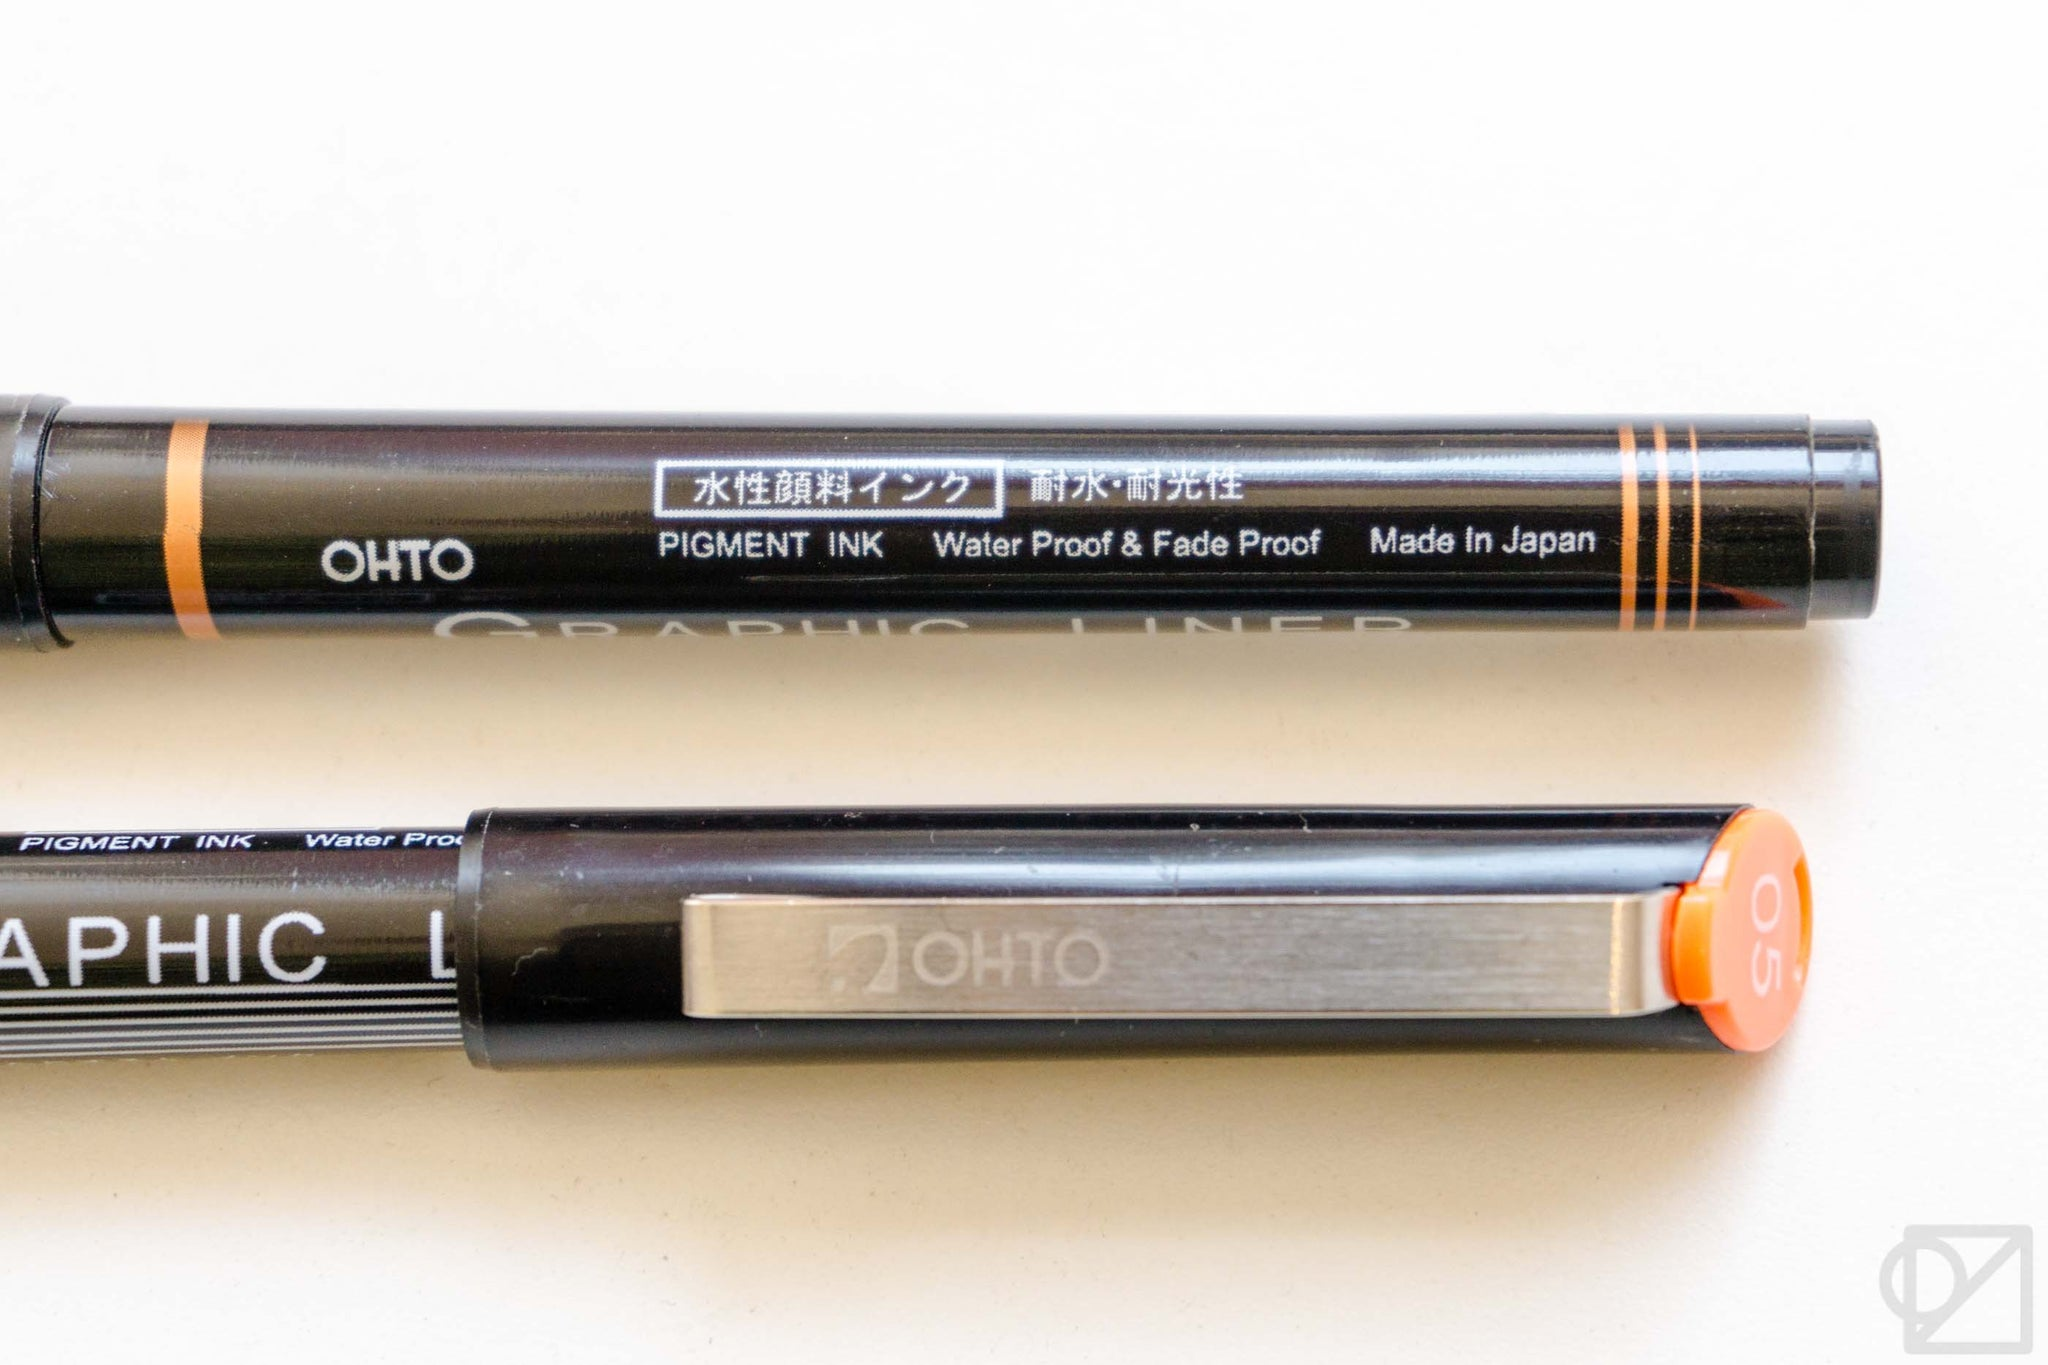 OHTO Graphic Liner Drawing Pen Set